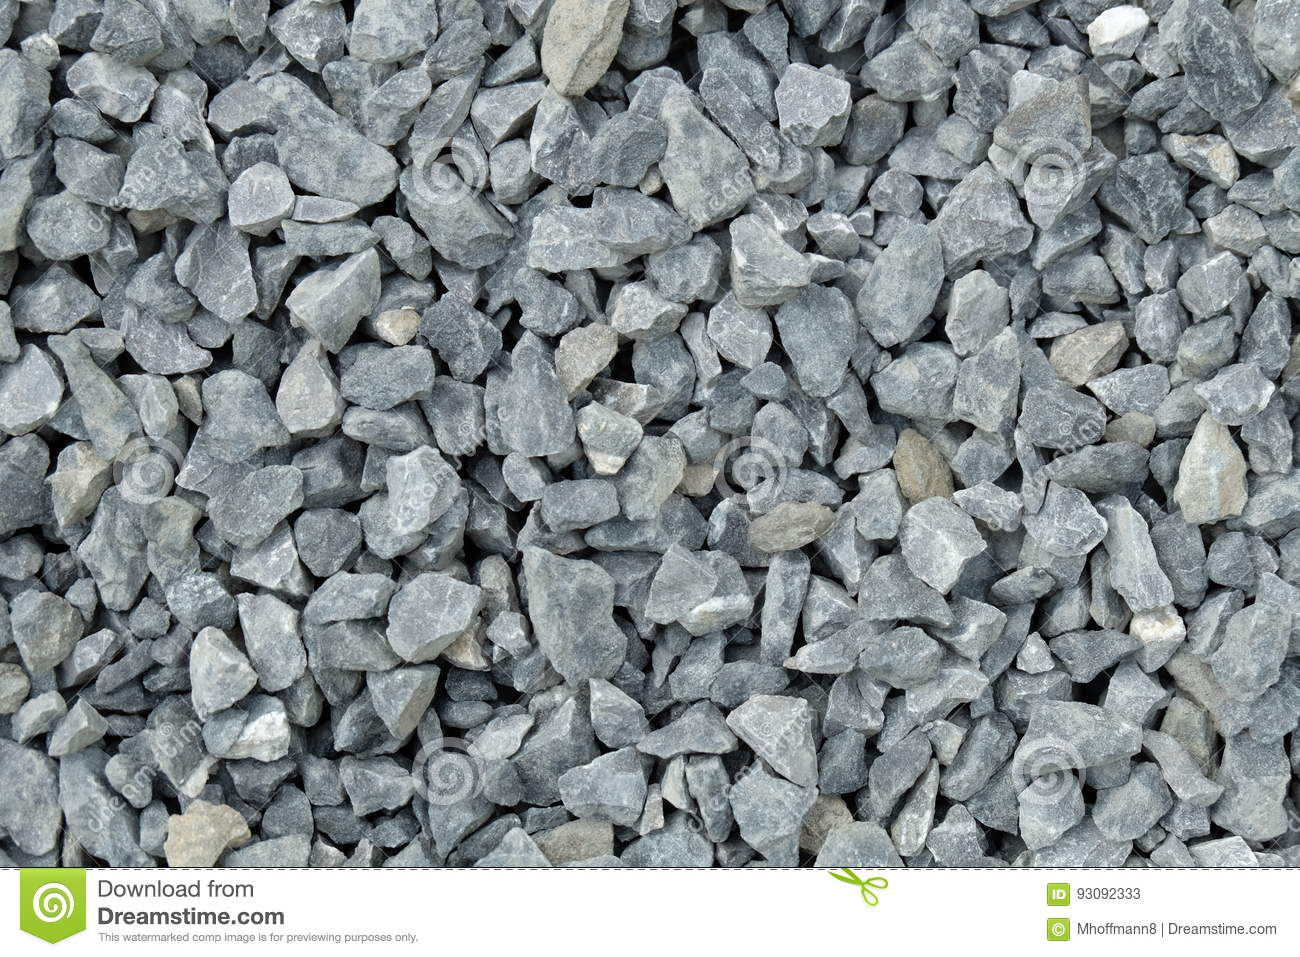 Aggregate / gravel pattern - a heap of coarse gray stones, crushed at a stone pit